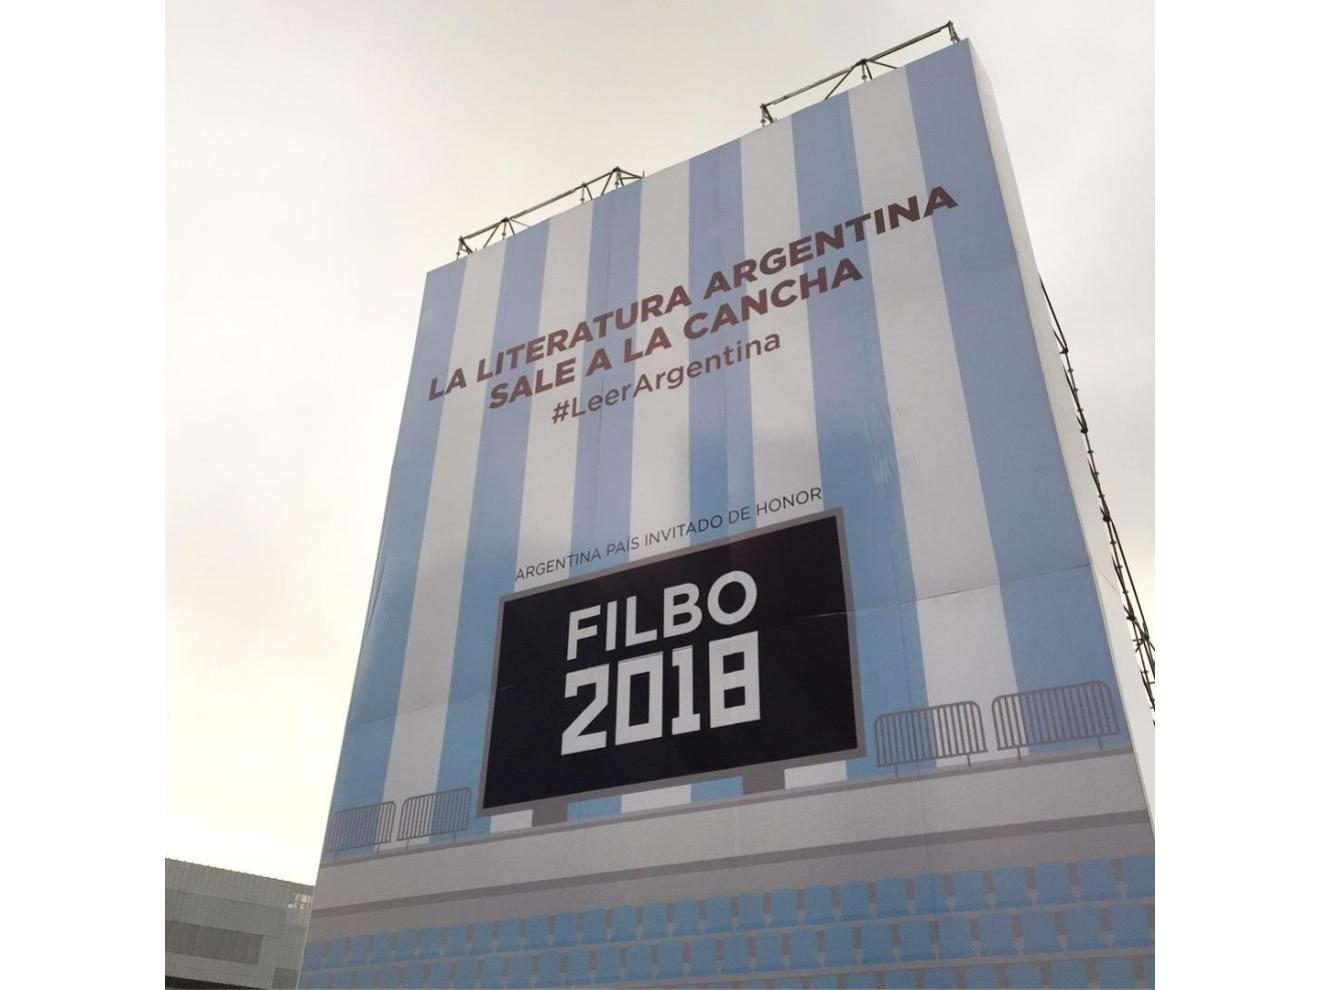 Argentina's Stand at FilBo